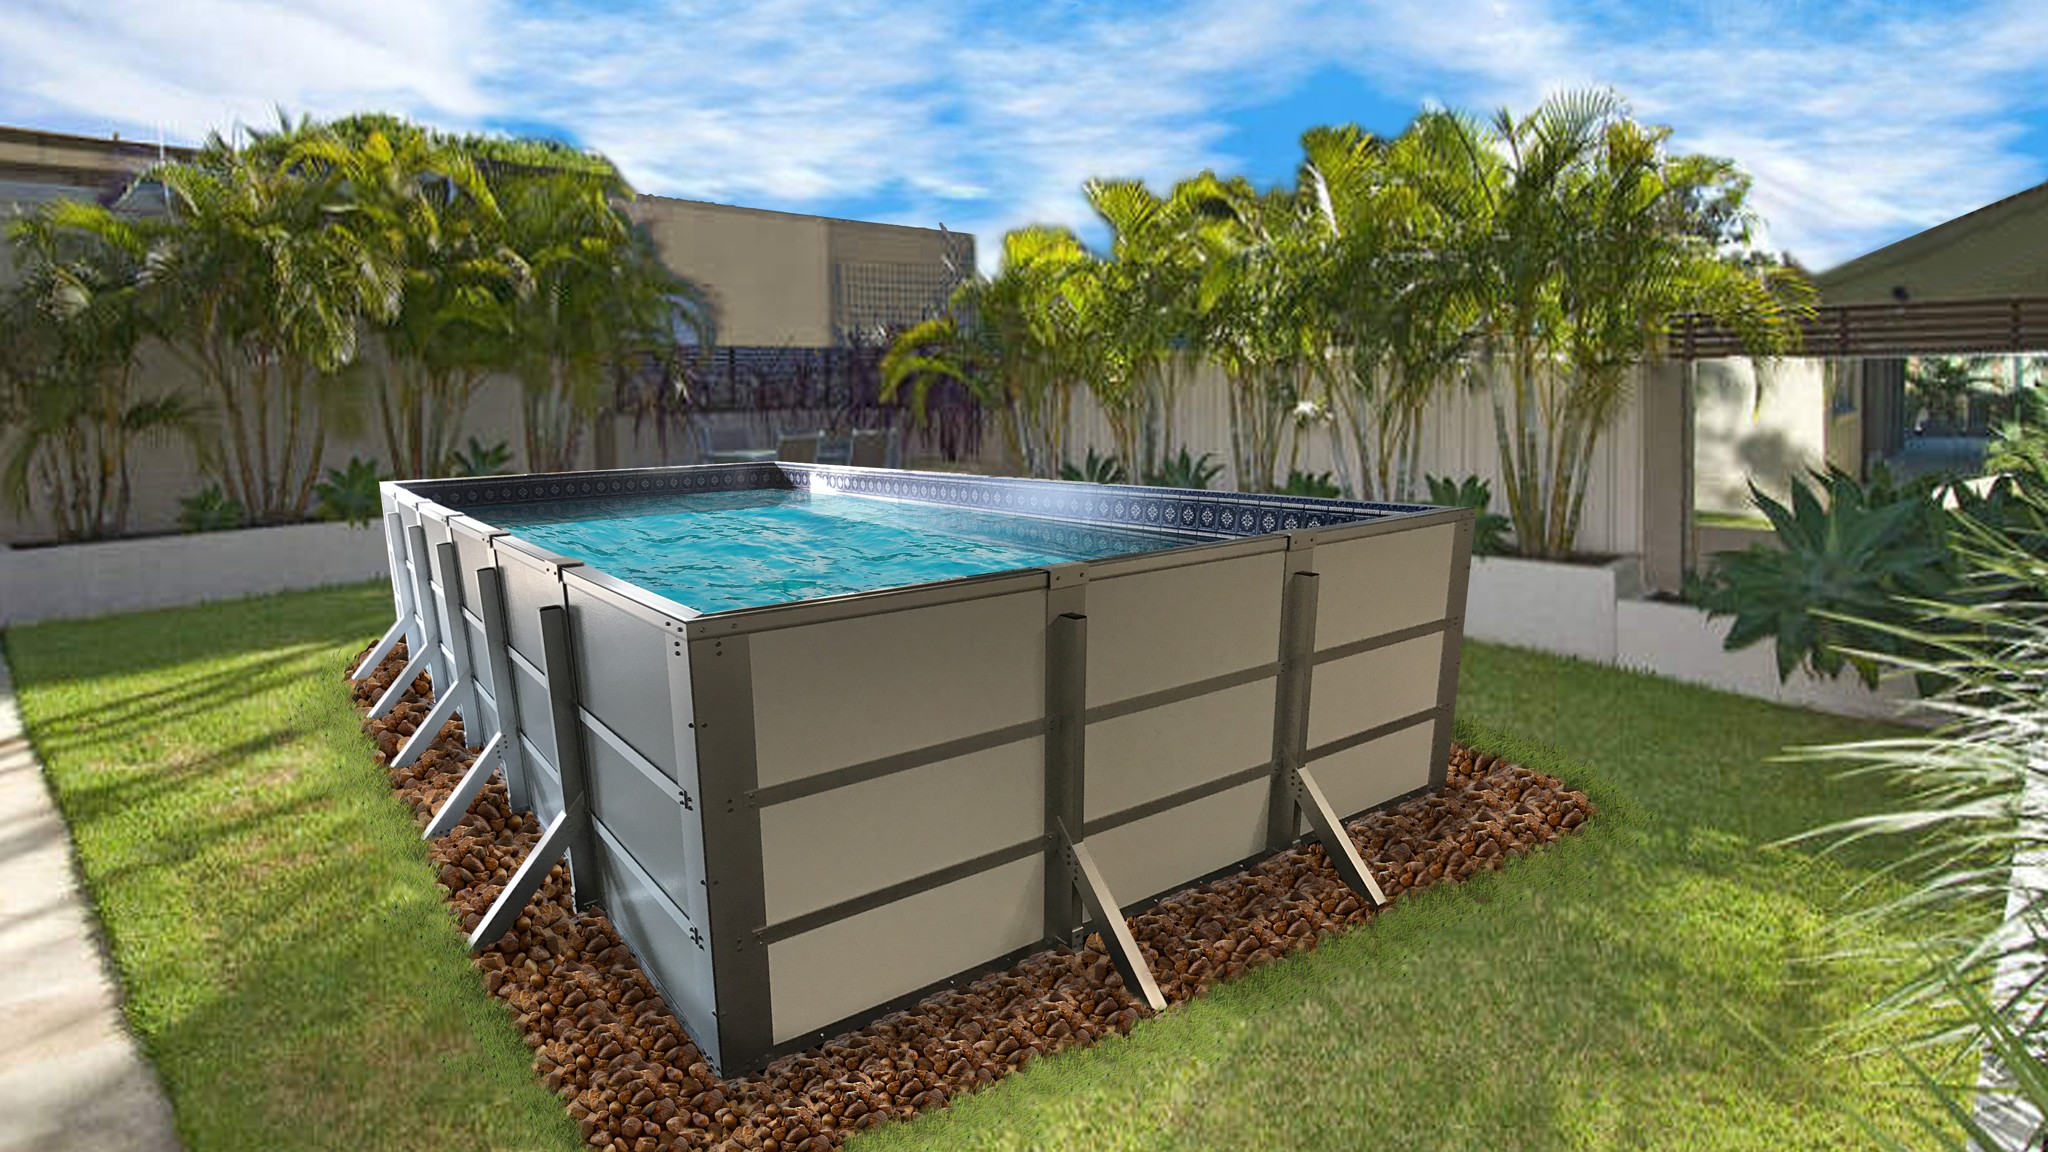 HERCULES MODULAR ABOVEGROUND RECTANGULAR POOL FOR 2019 ...